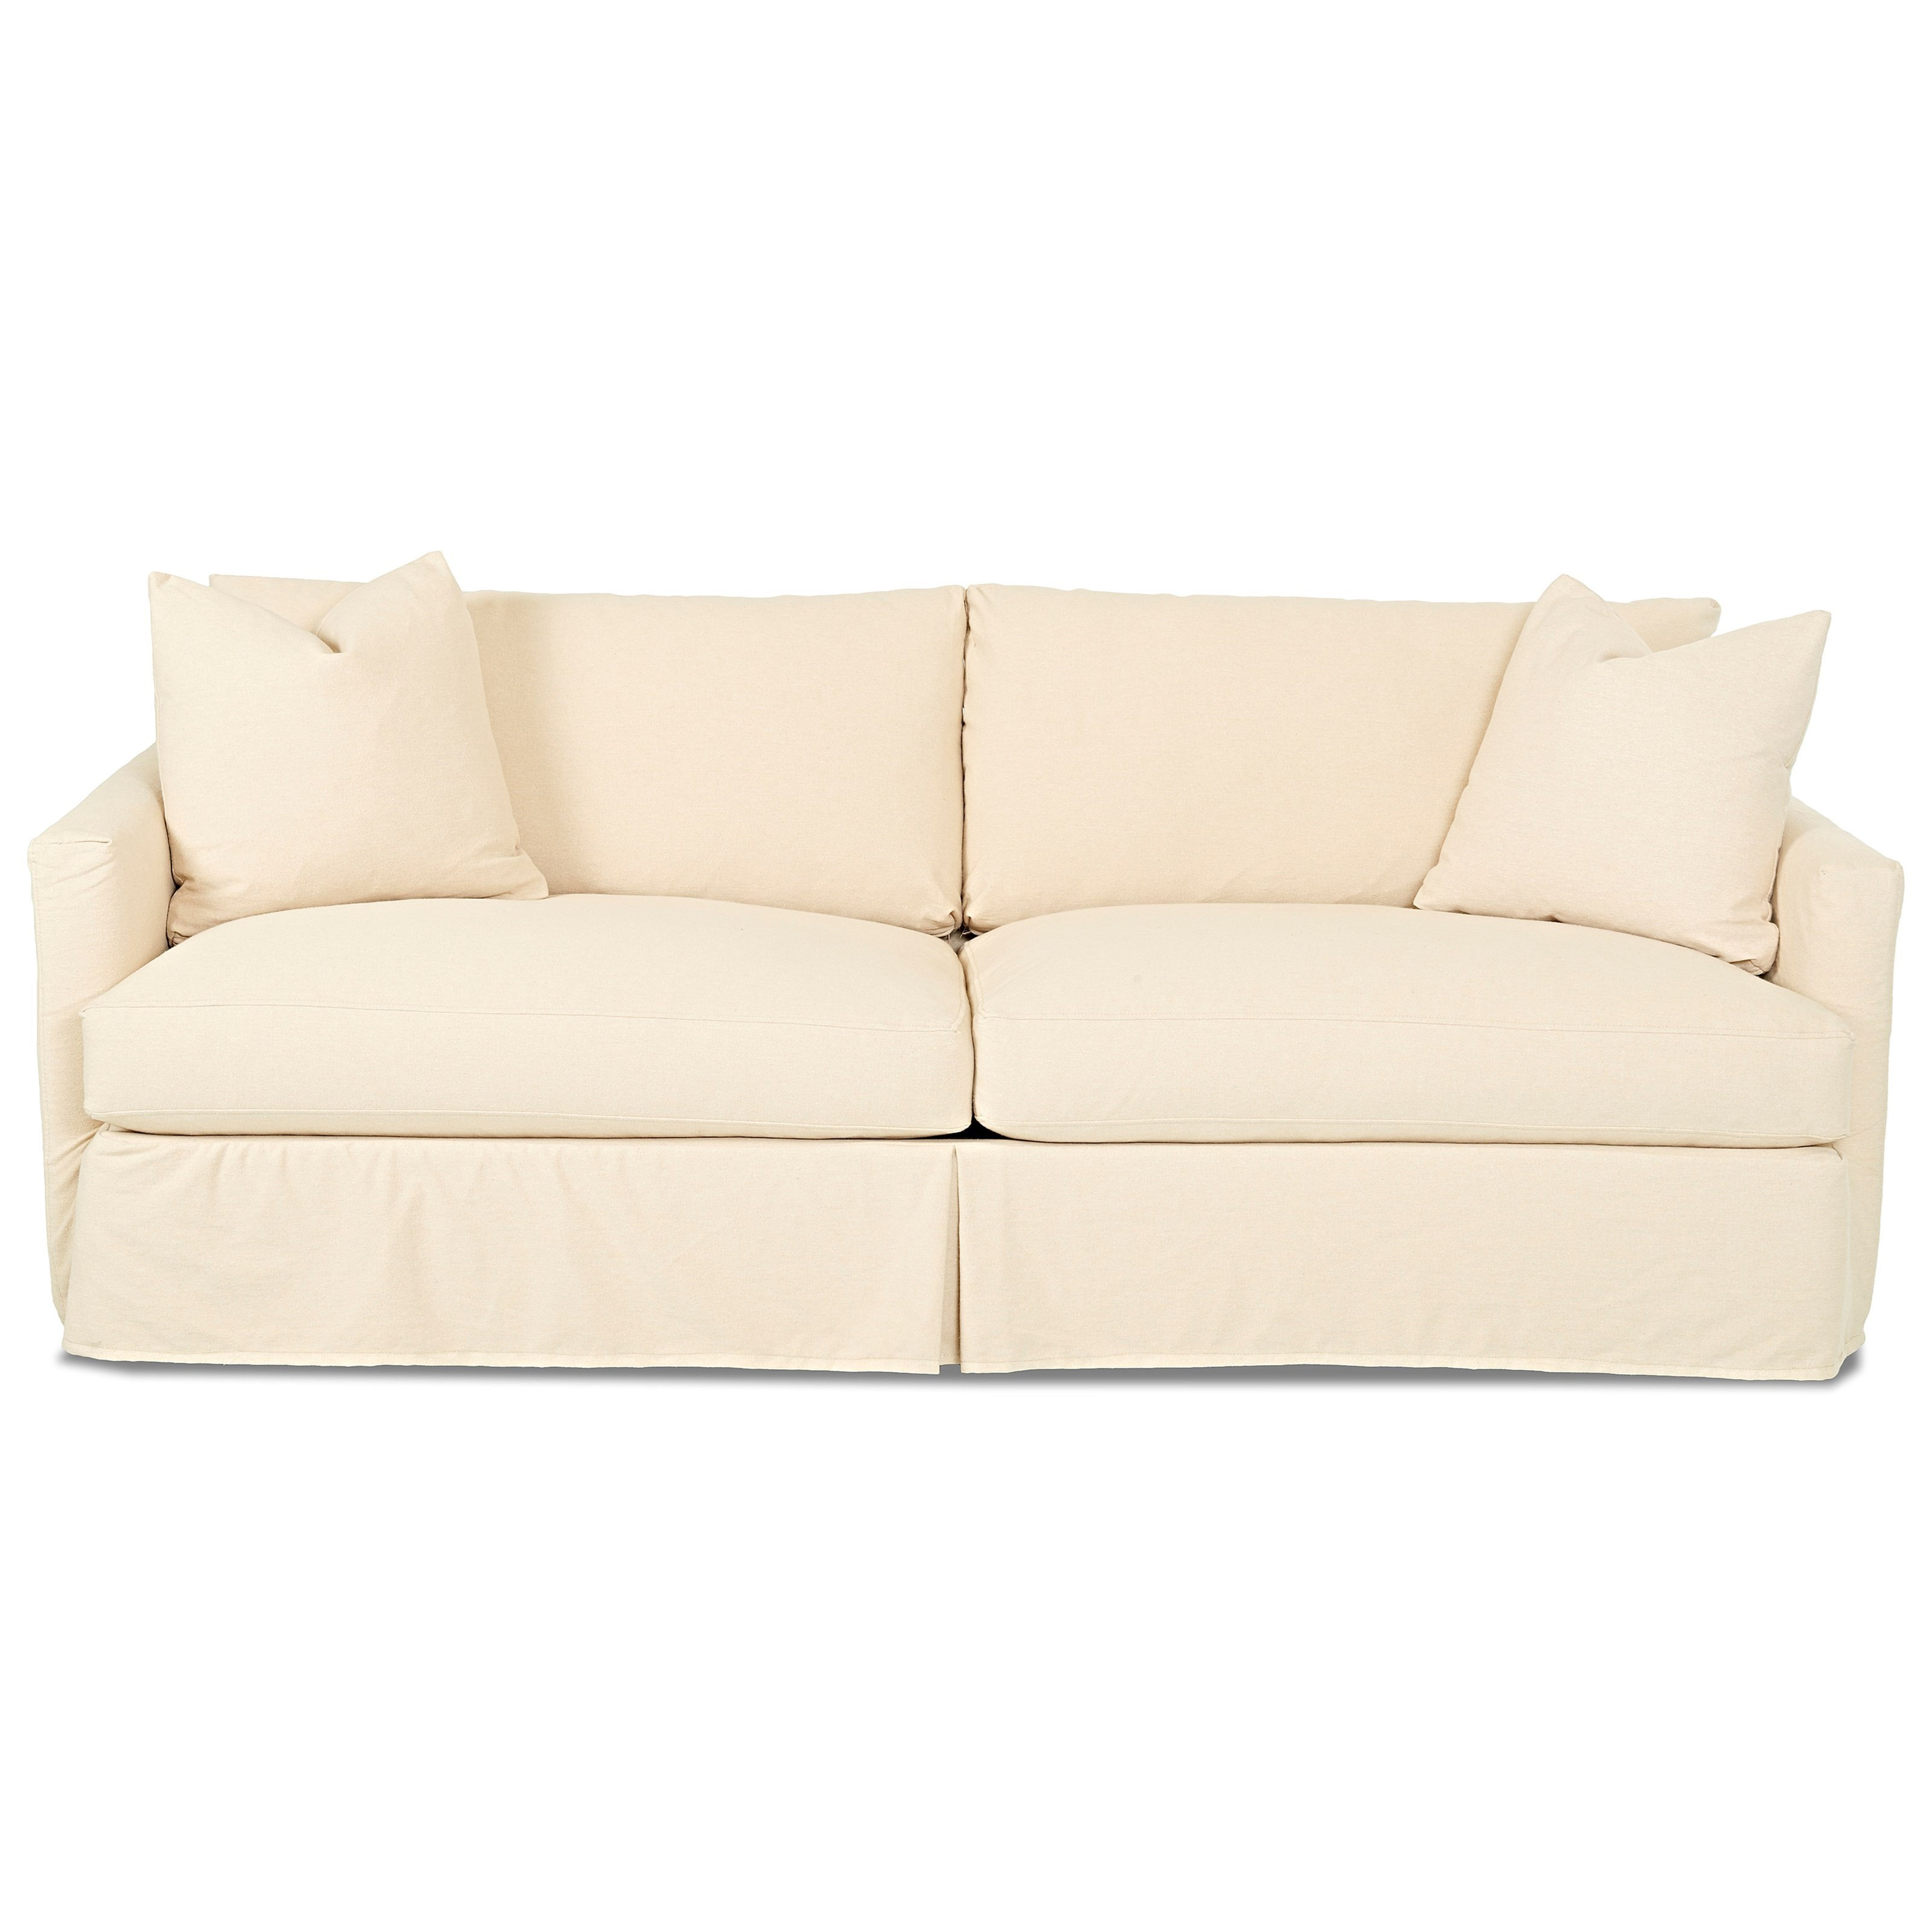 Leisure Extra Large Sofa with Slipcover by Klaussner at Catalog Outlet